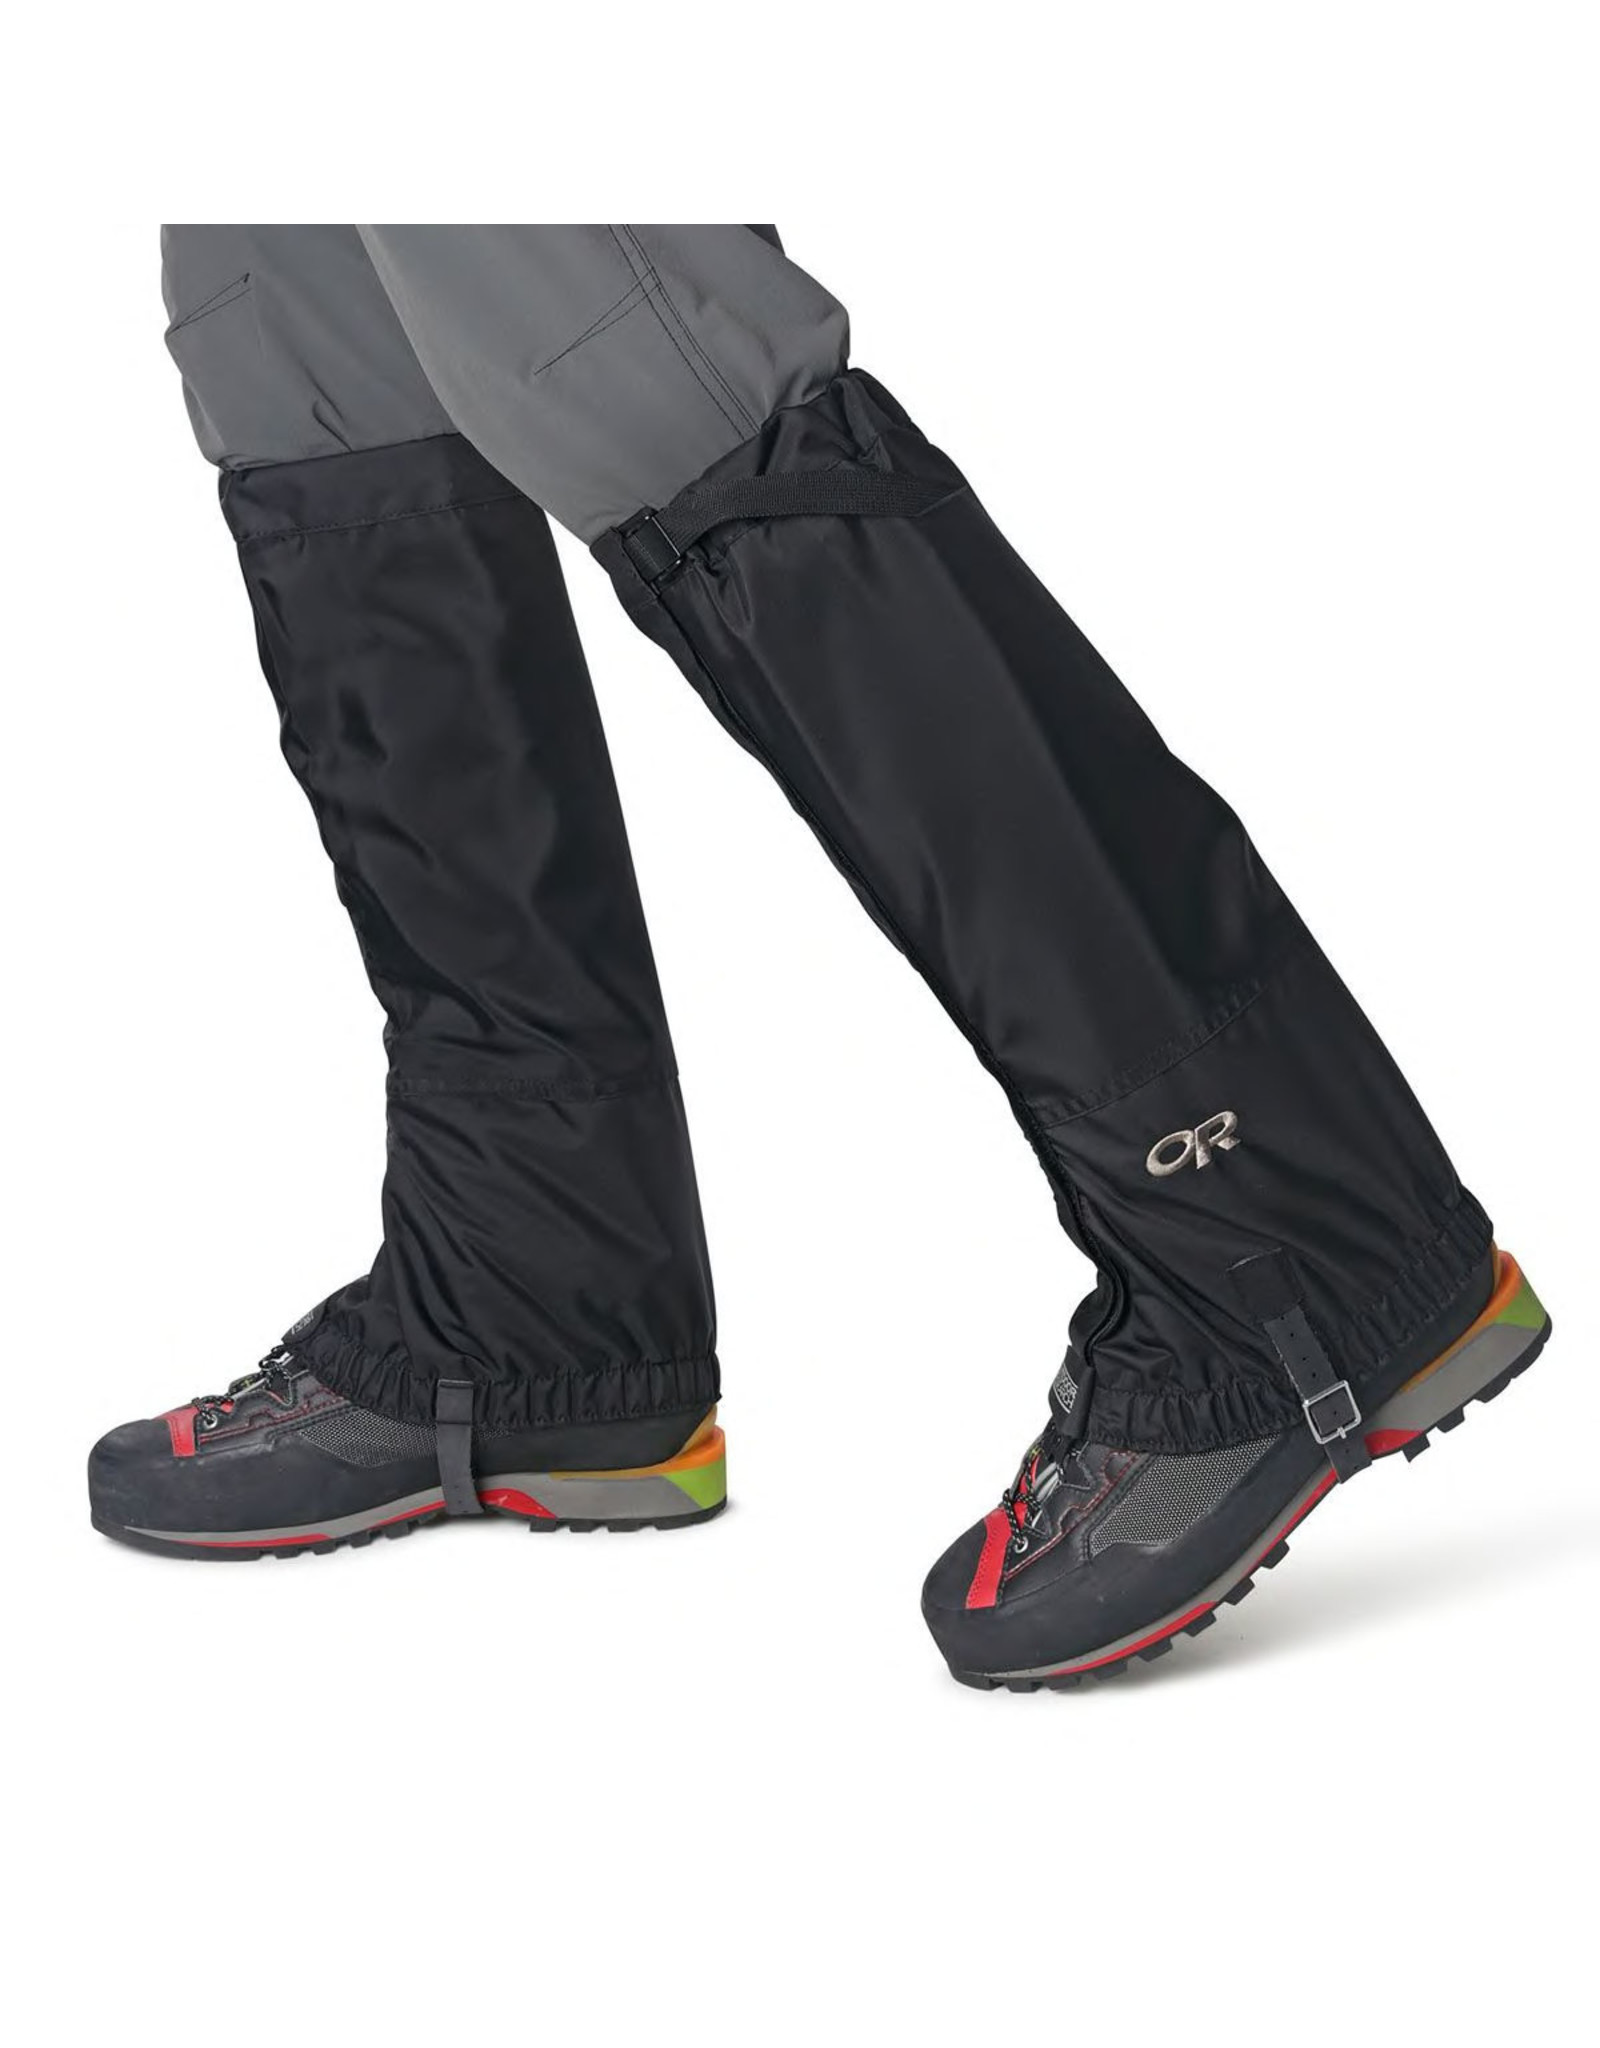 Outdoor Research Men's Rocky Mountain High Gaiters